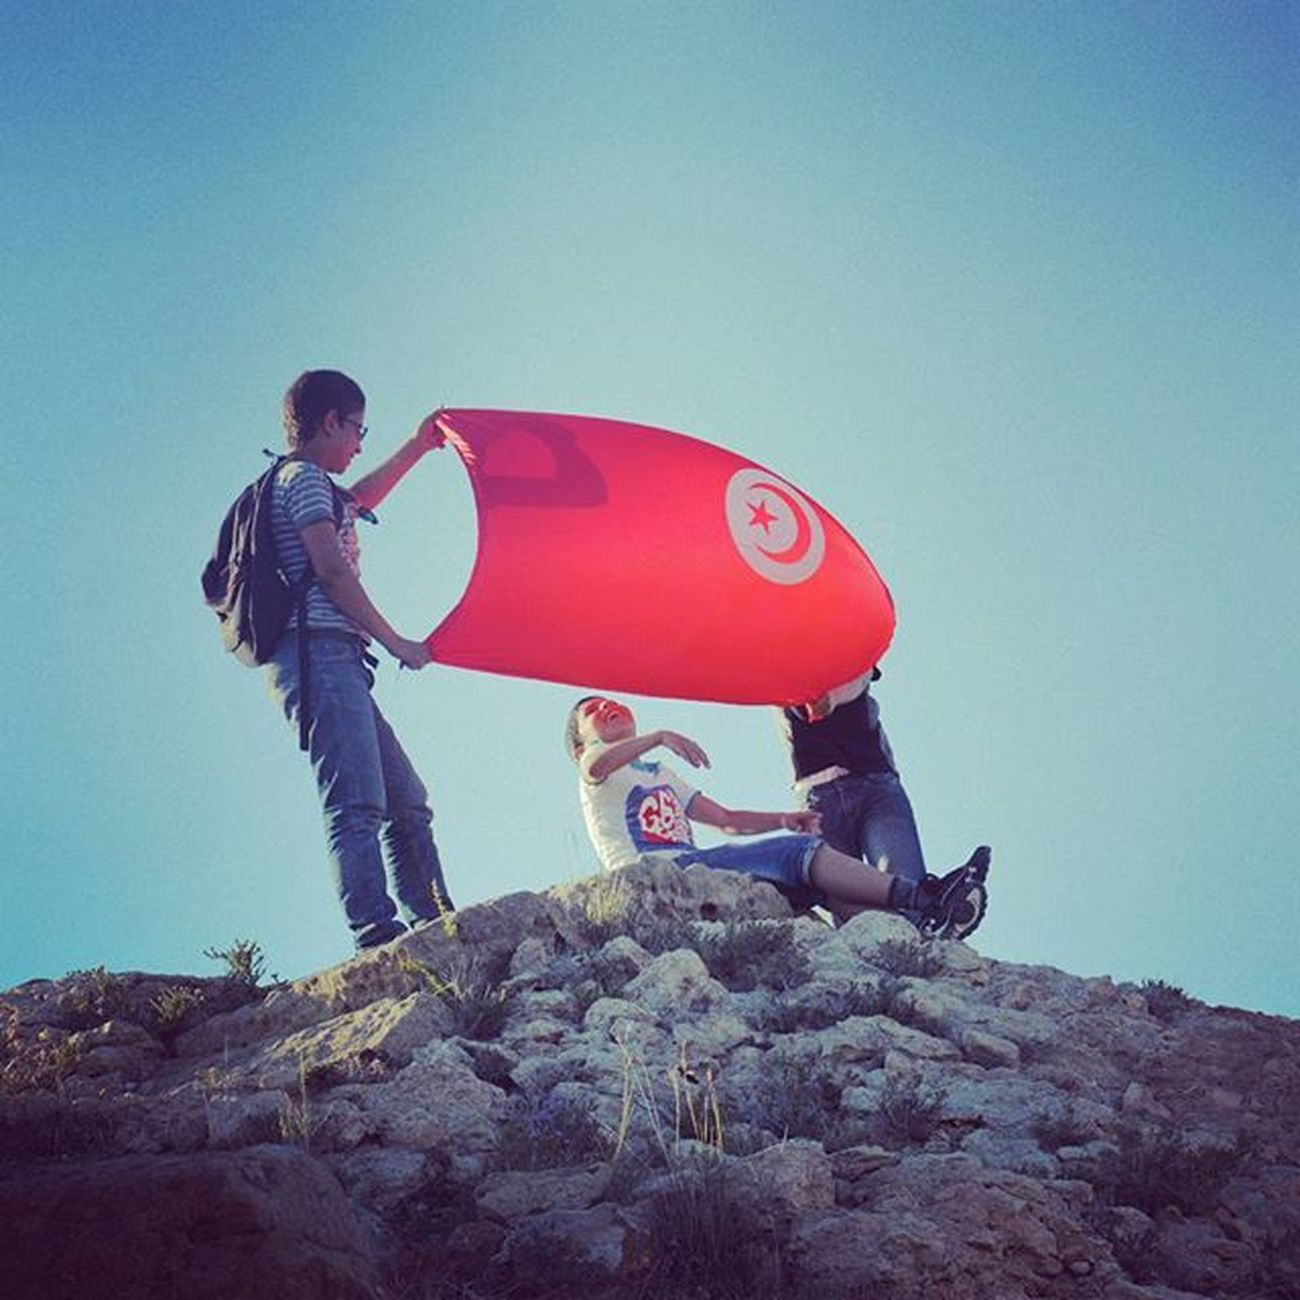 Tunisia IgersTunisia Flag Top Kids Happiness The_tunisian_brand التوانسة <3